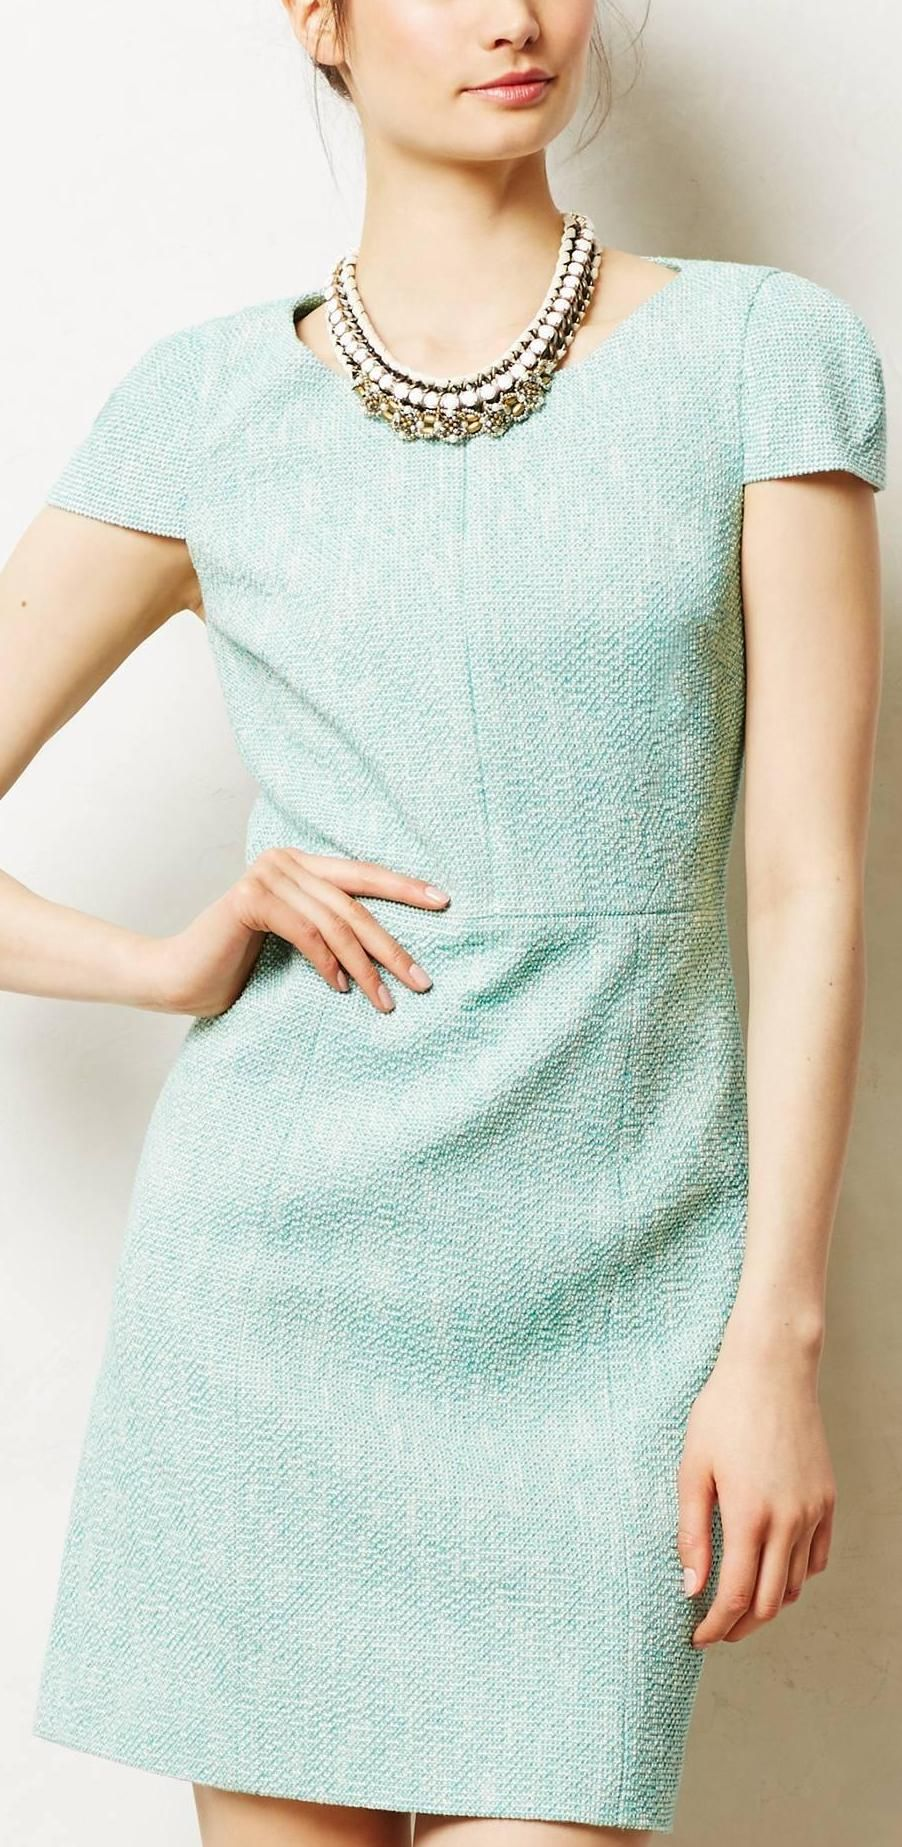 Anthropology Mint Dress ♡ L O V E This Color Amp Style